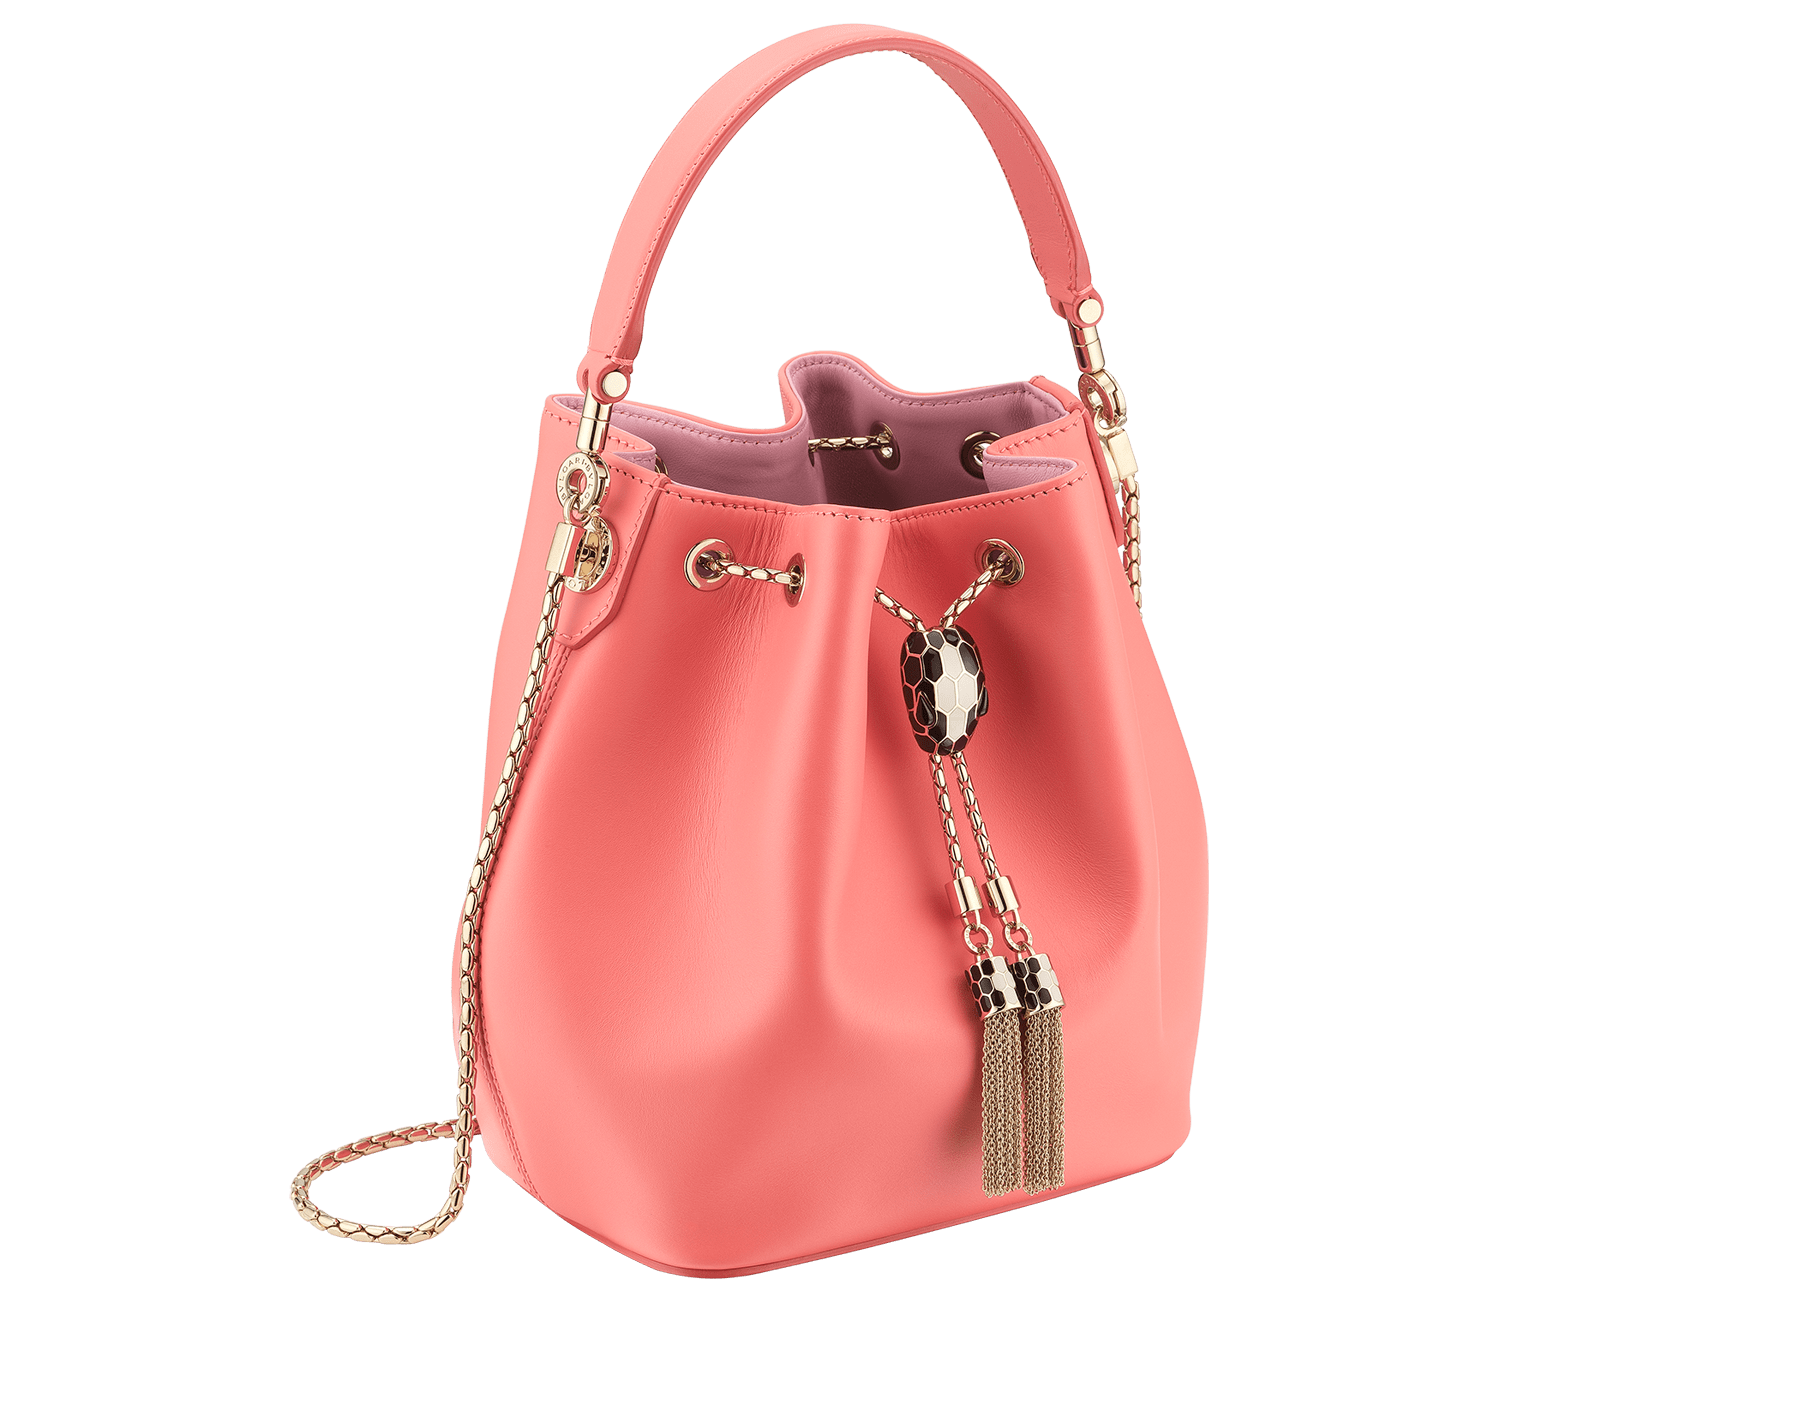 Serpenti Forever bucket in silky coral smooth calf leather and a flamingo quartz inner lining. Hardware in light gold plated brass and snakehead closure in black and white agate enamel, with eyes in black onyx. 288770 image 2